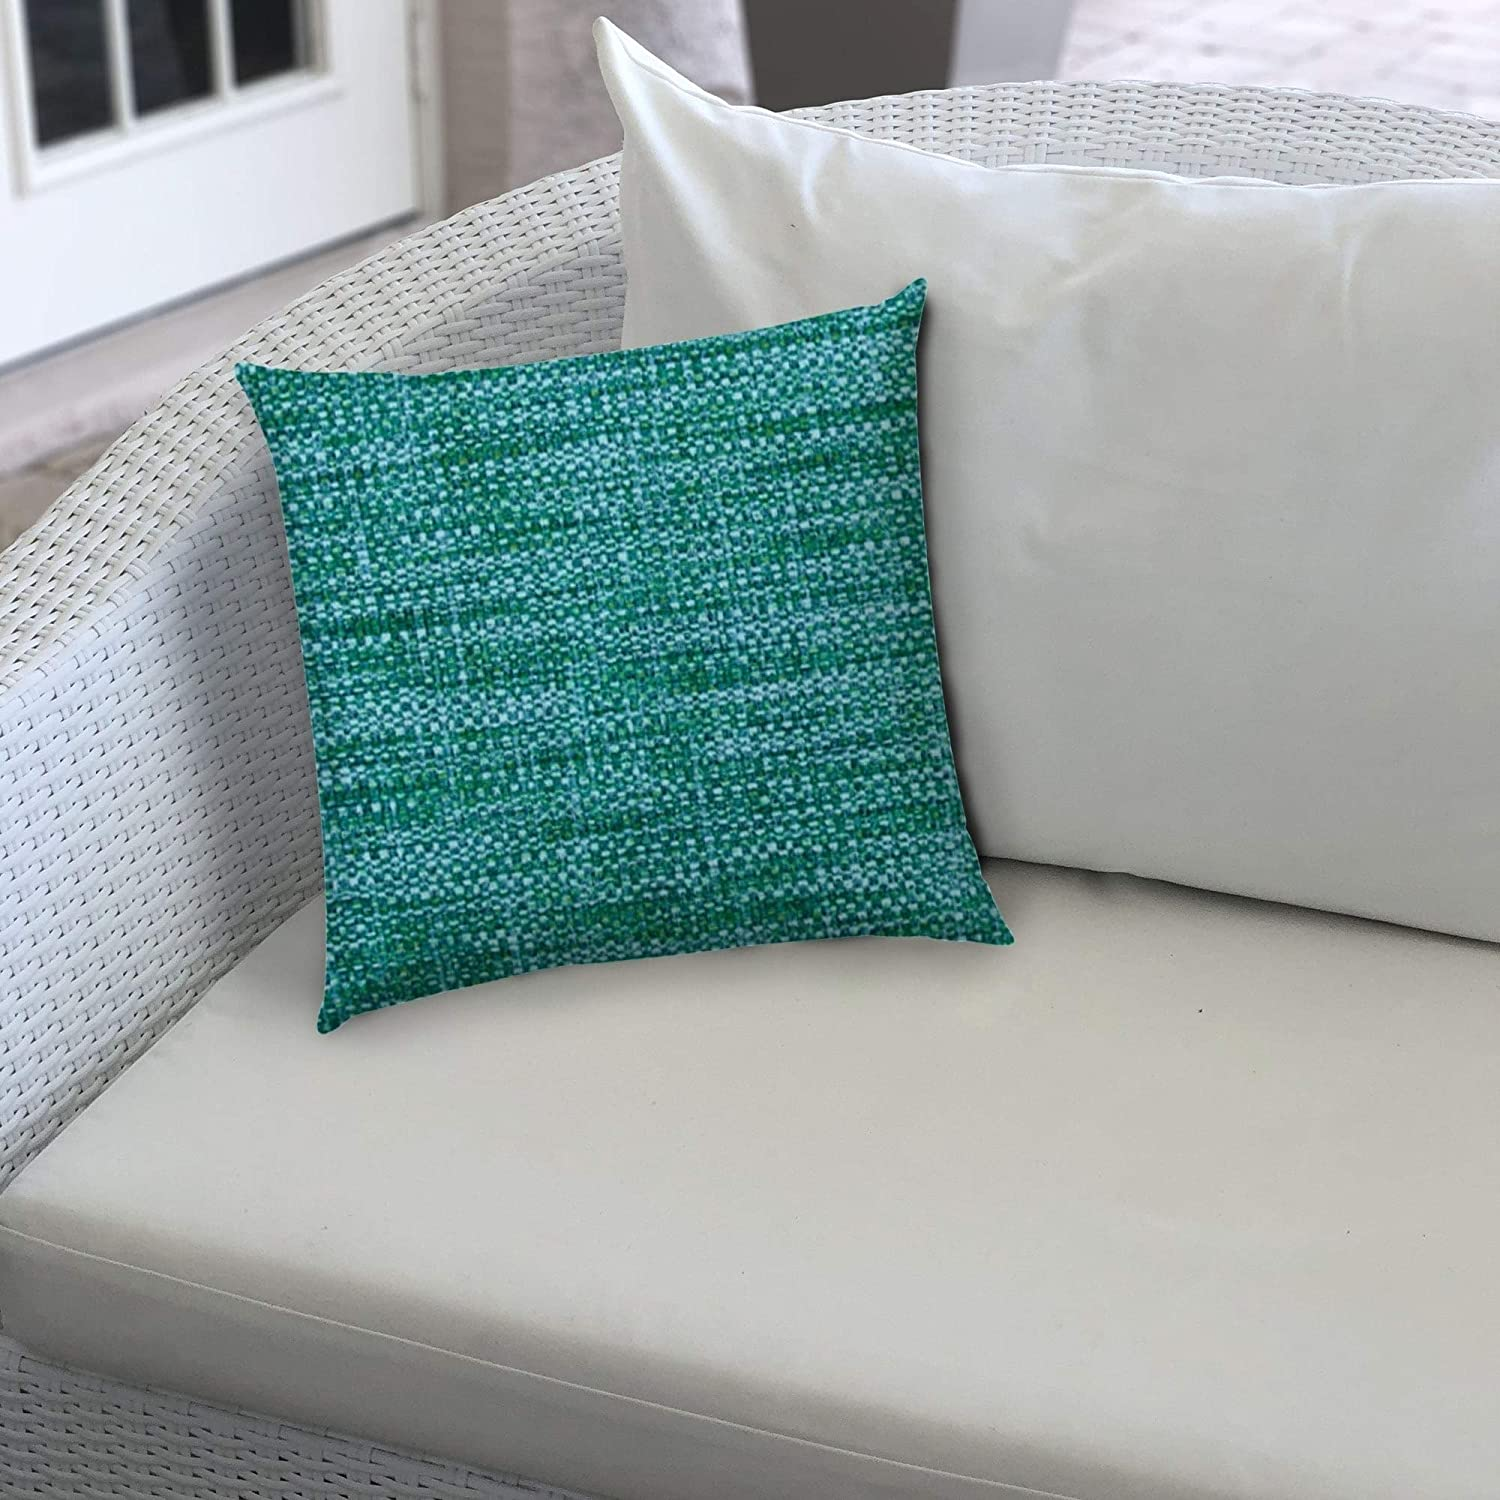 Boho Sea Aqua Indoor/Outdoor Pillows Sewn Closure (Set Two) Color Graphic Modern Contemporary Polyester Water Resistant